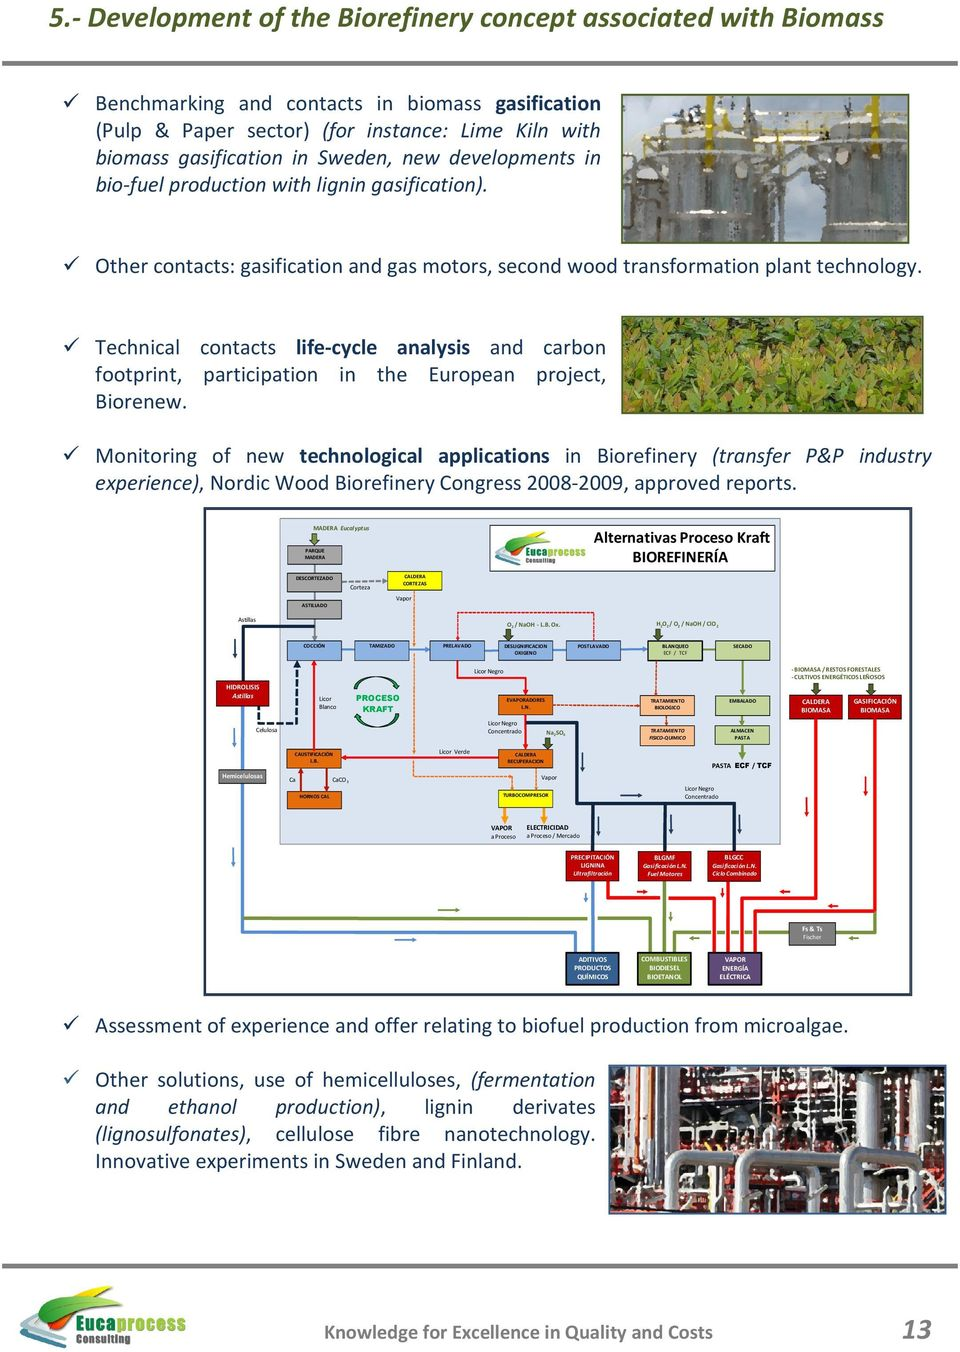 Technical contacts life-cycle analysis and carbon footprint, participation in the European project, Biorenew.